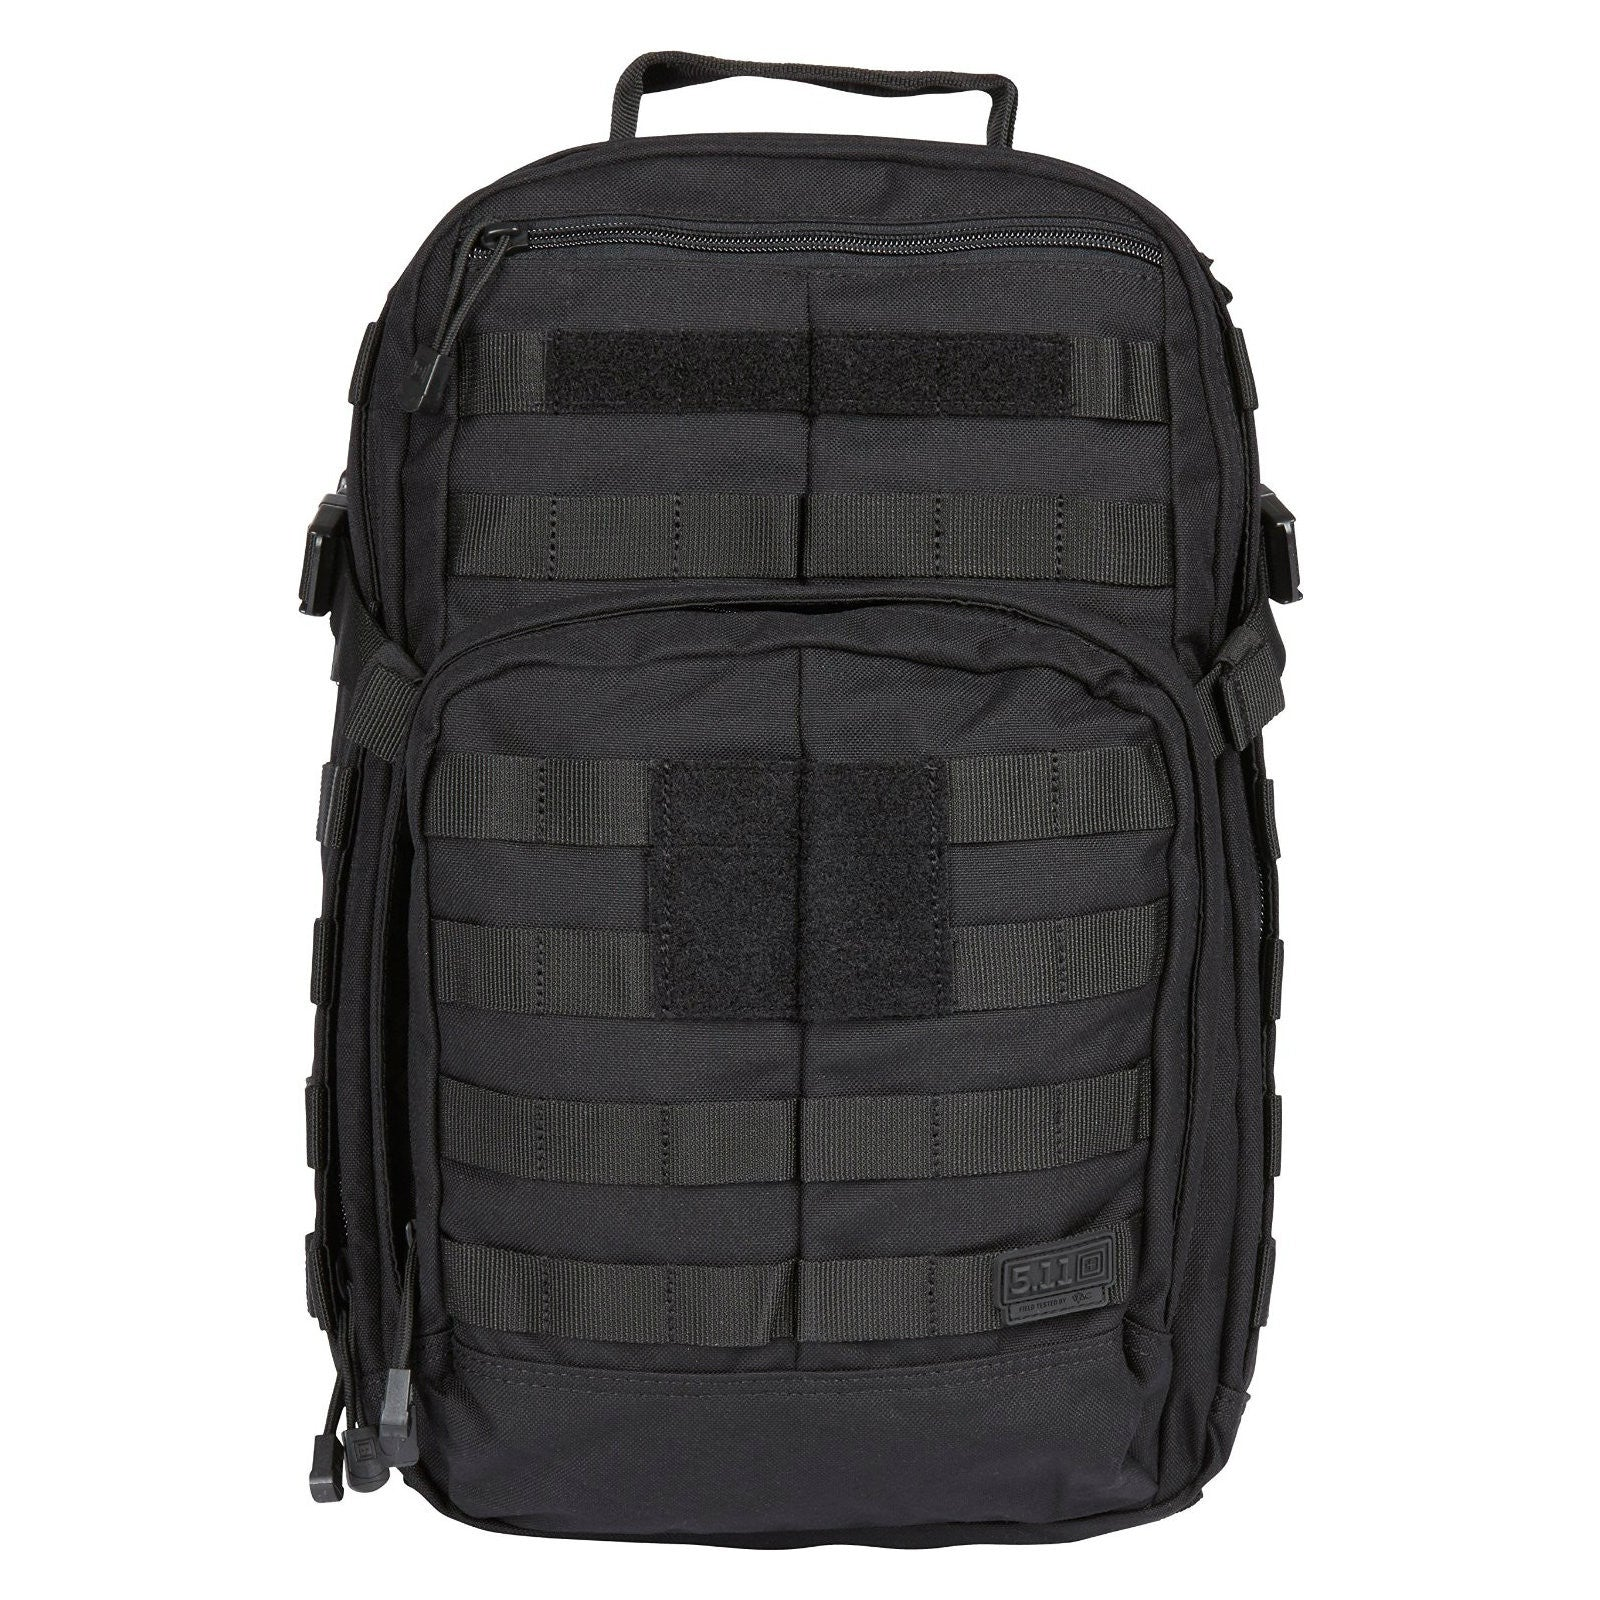 5.11 Rush 12 Backpack - Indy Army Navy